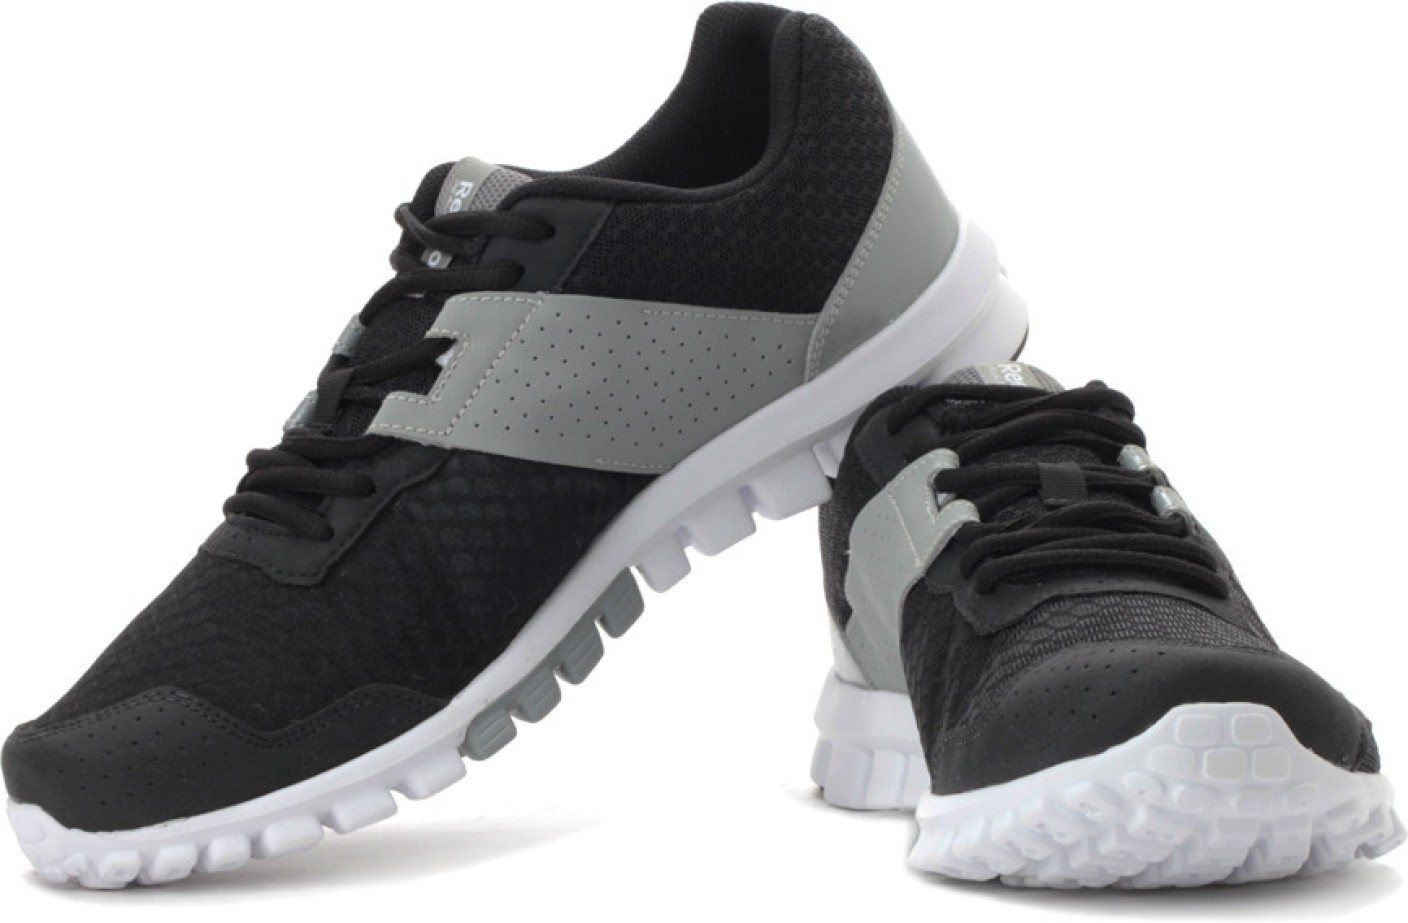 Reebok Realflex Shoes Online